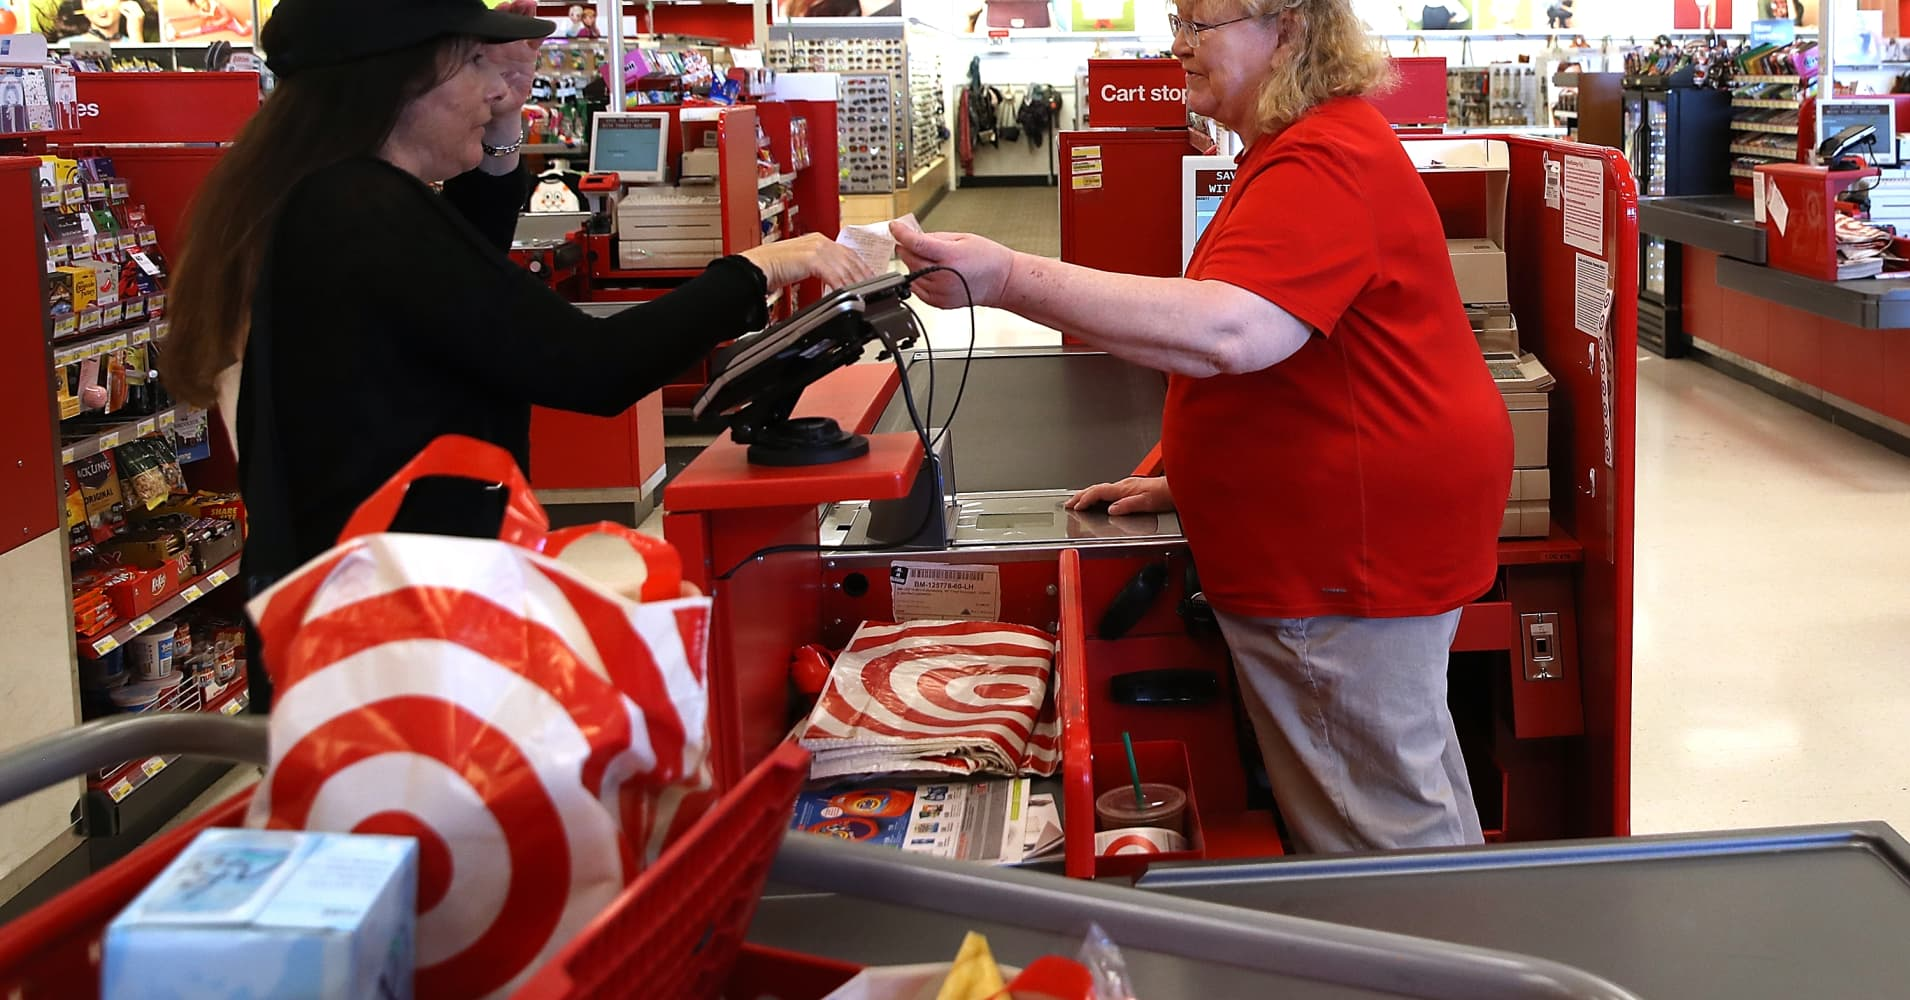 Buy Target shares before earnings due to its likely 'solid' results: Baird